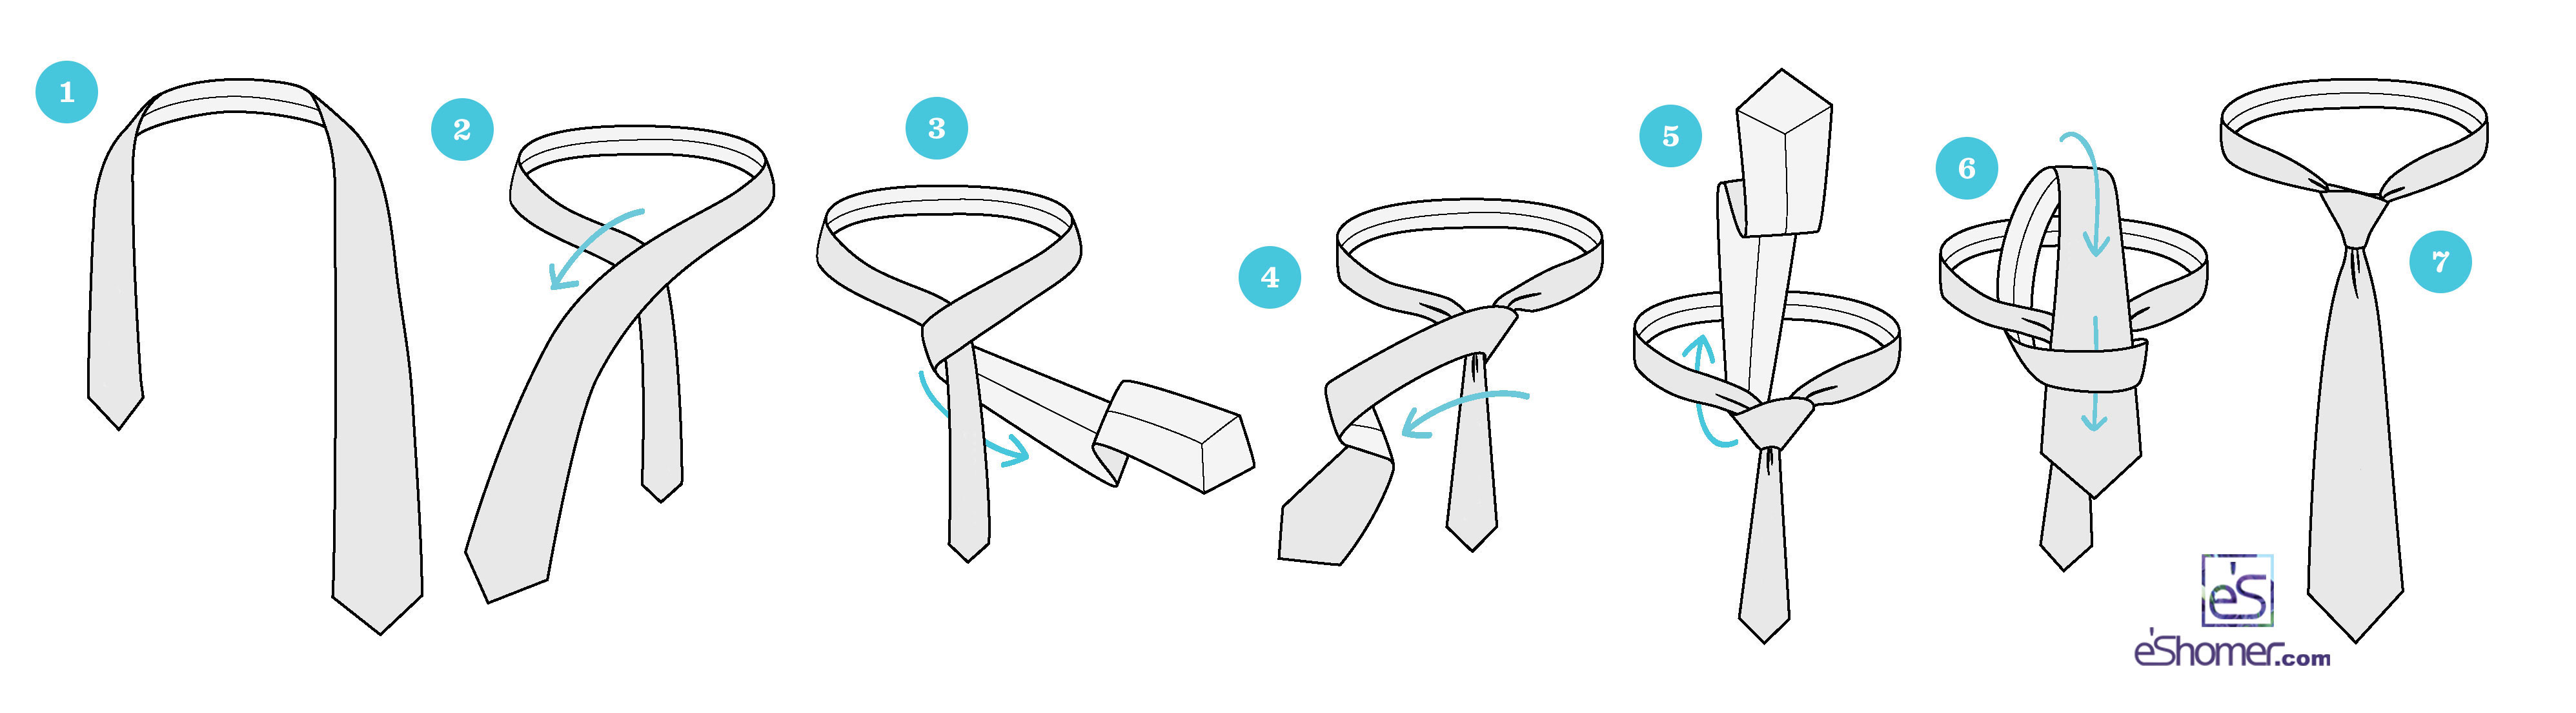 four-in-hand-knot-tie